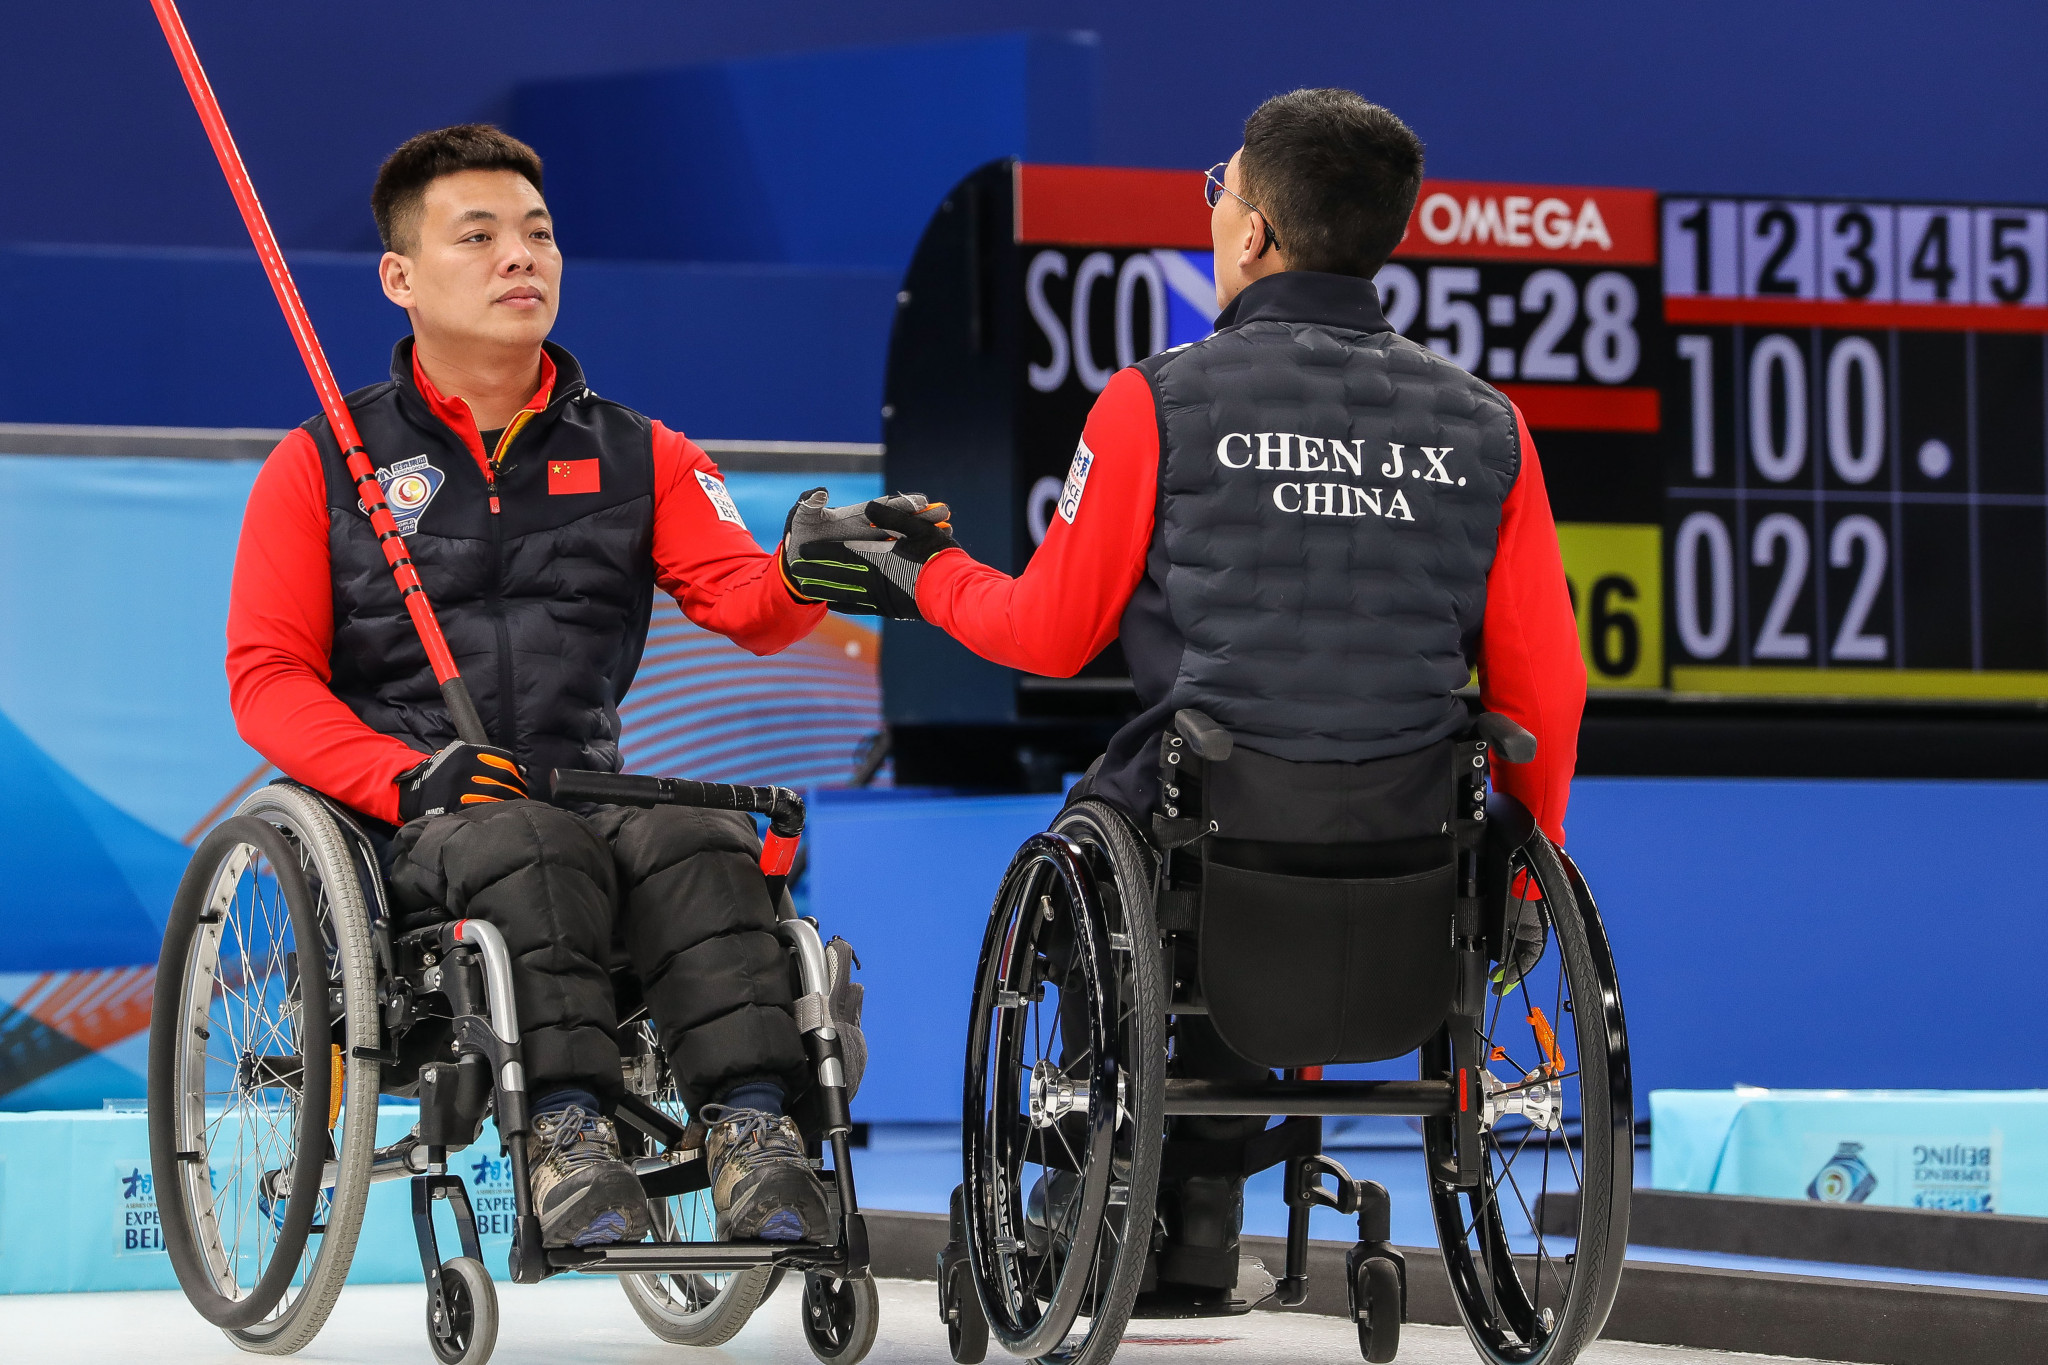 China top World Wheelchair Curling Championship standings after win over Switzerland